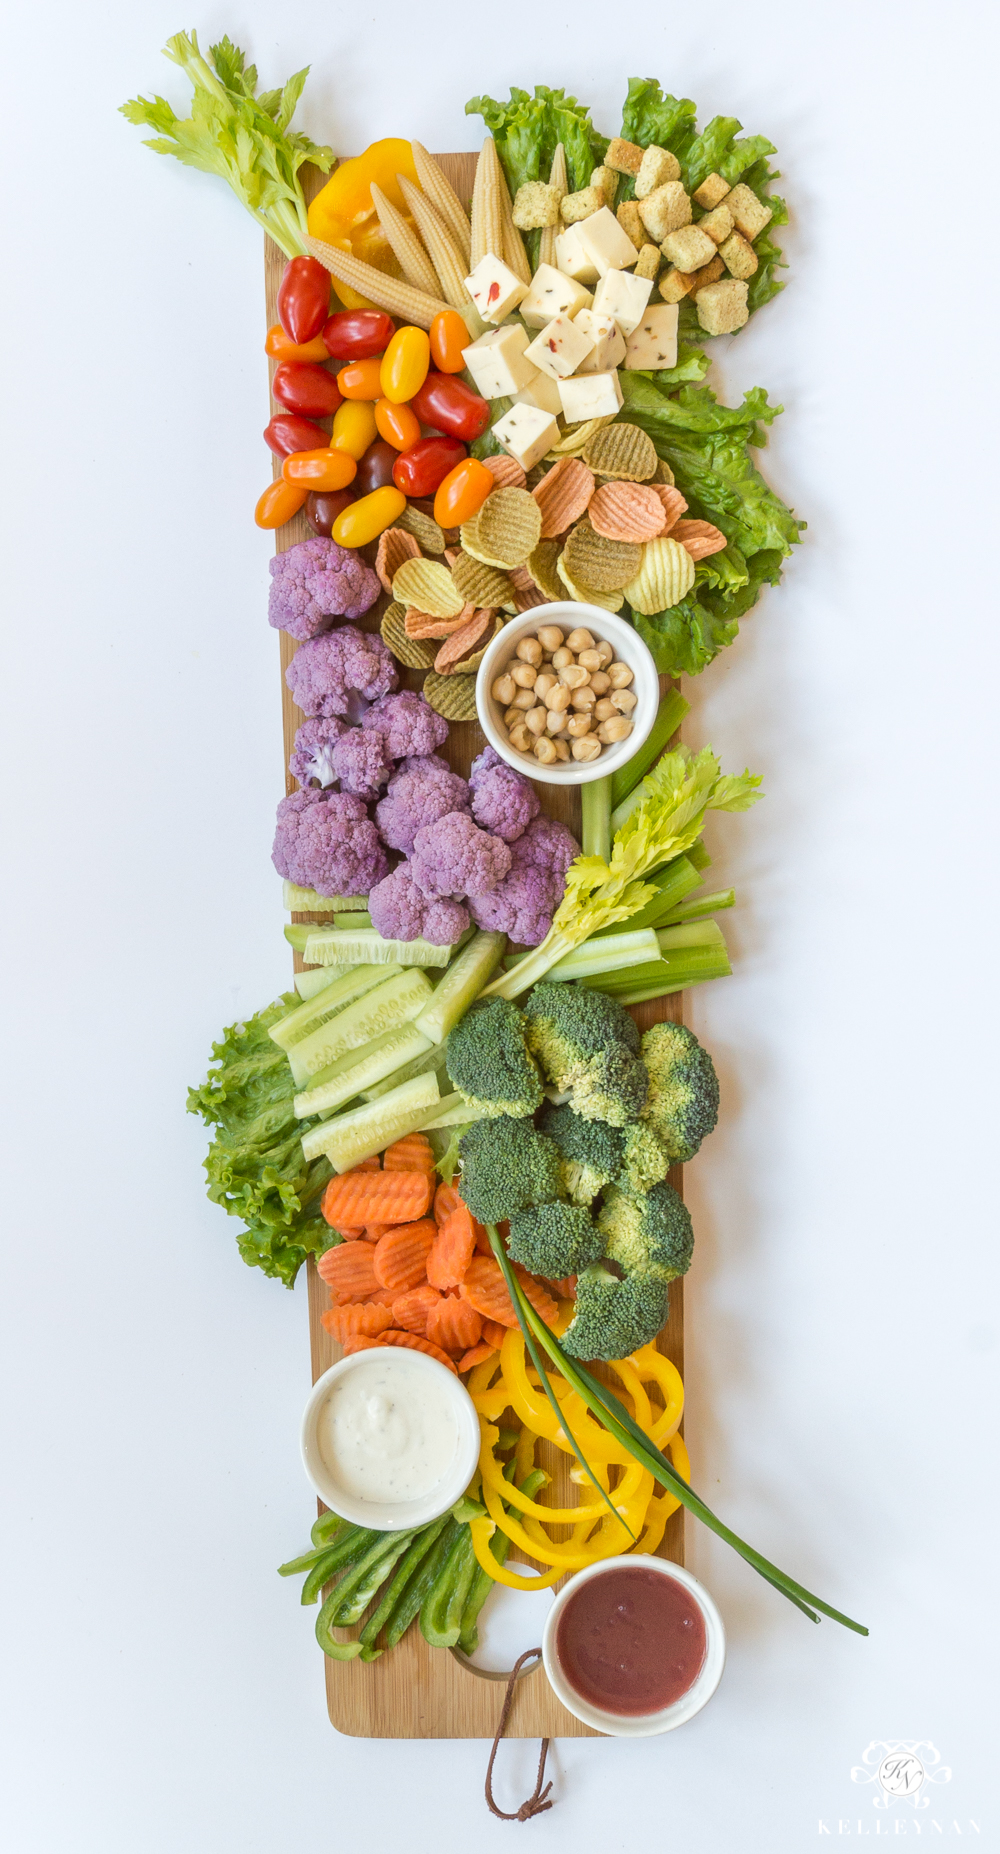 The perfect vegetable tray on a wooden paddle board